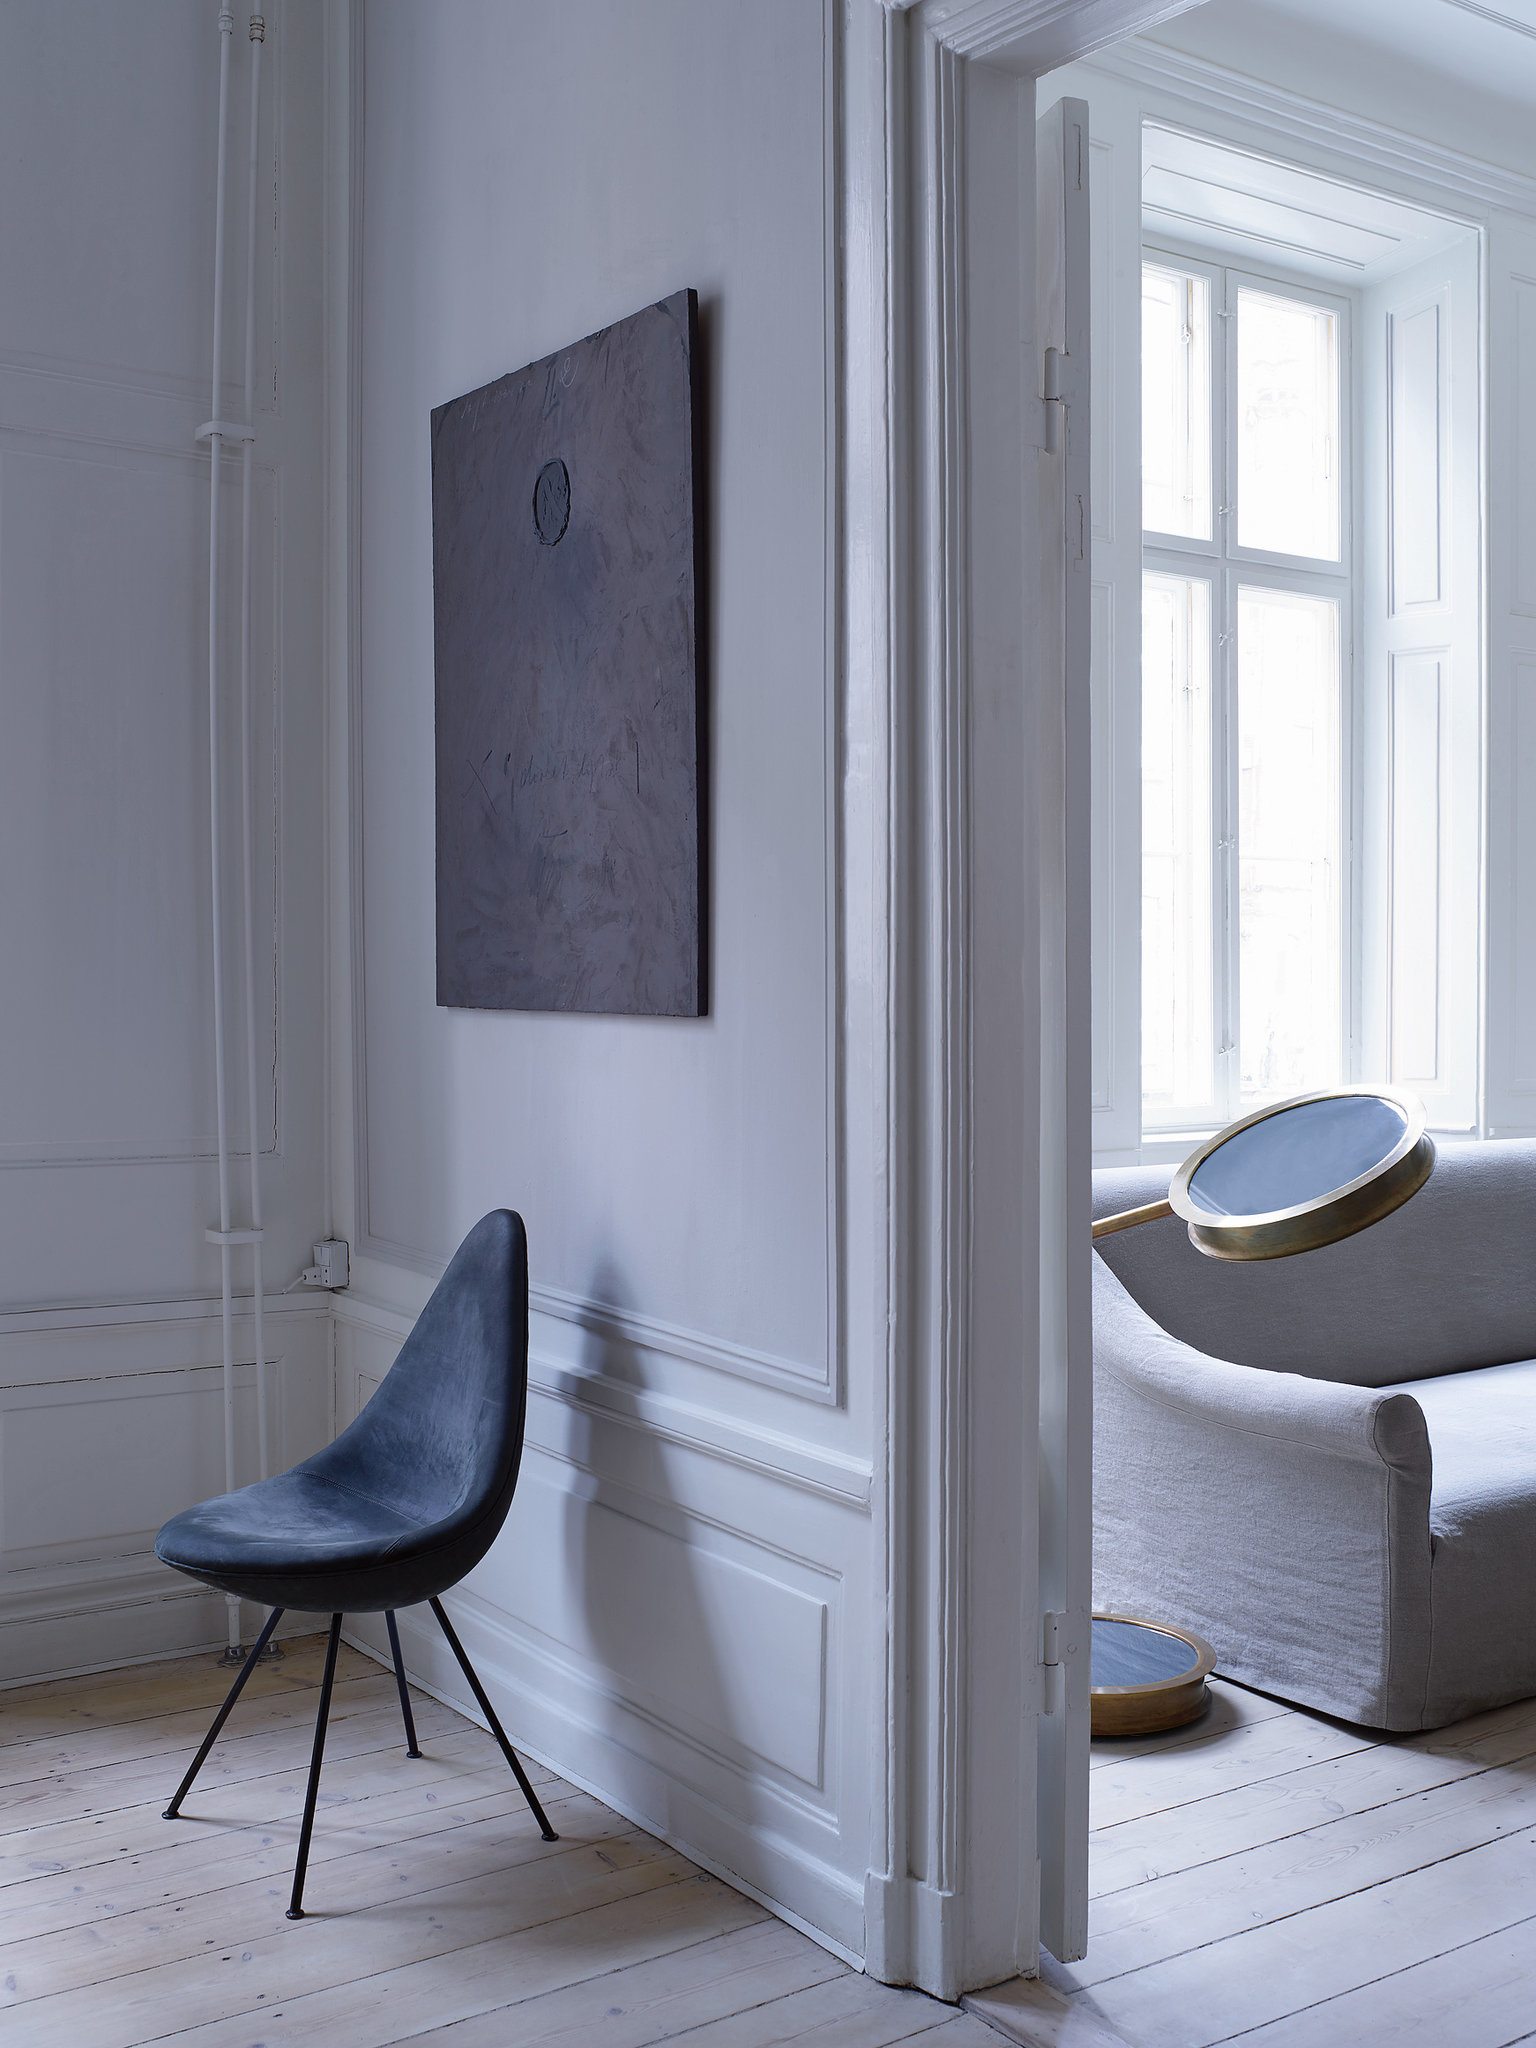 Gustav designed this special edition Arne Jacobsen drop chair in gray nubuck.